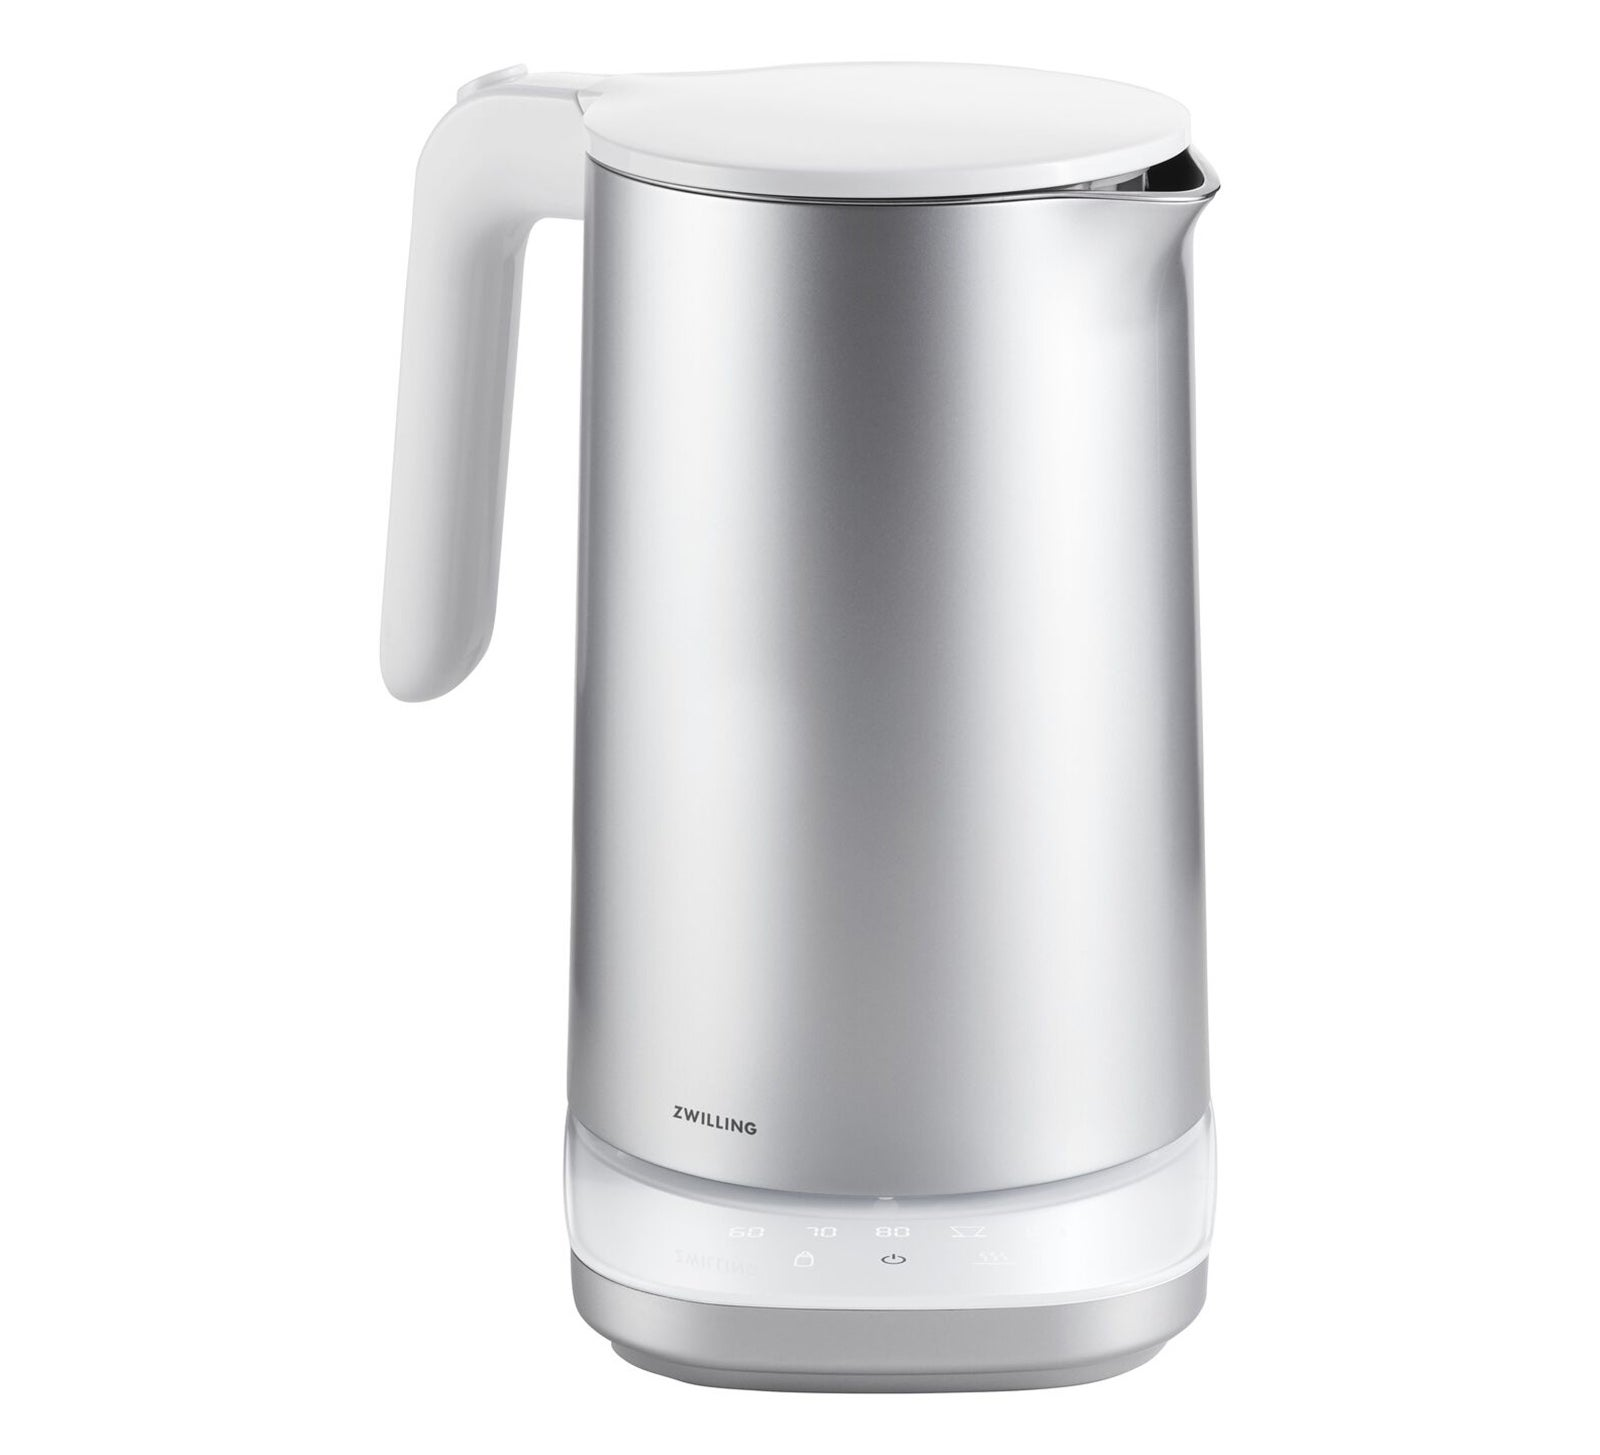 05-electrickettle-Zwilling-1